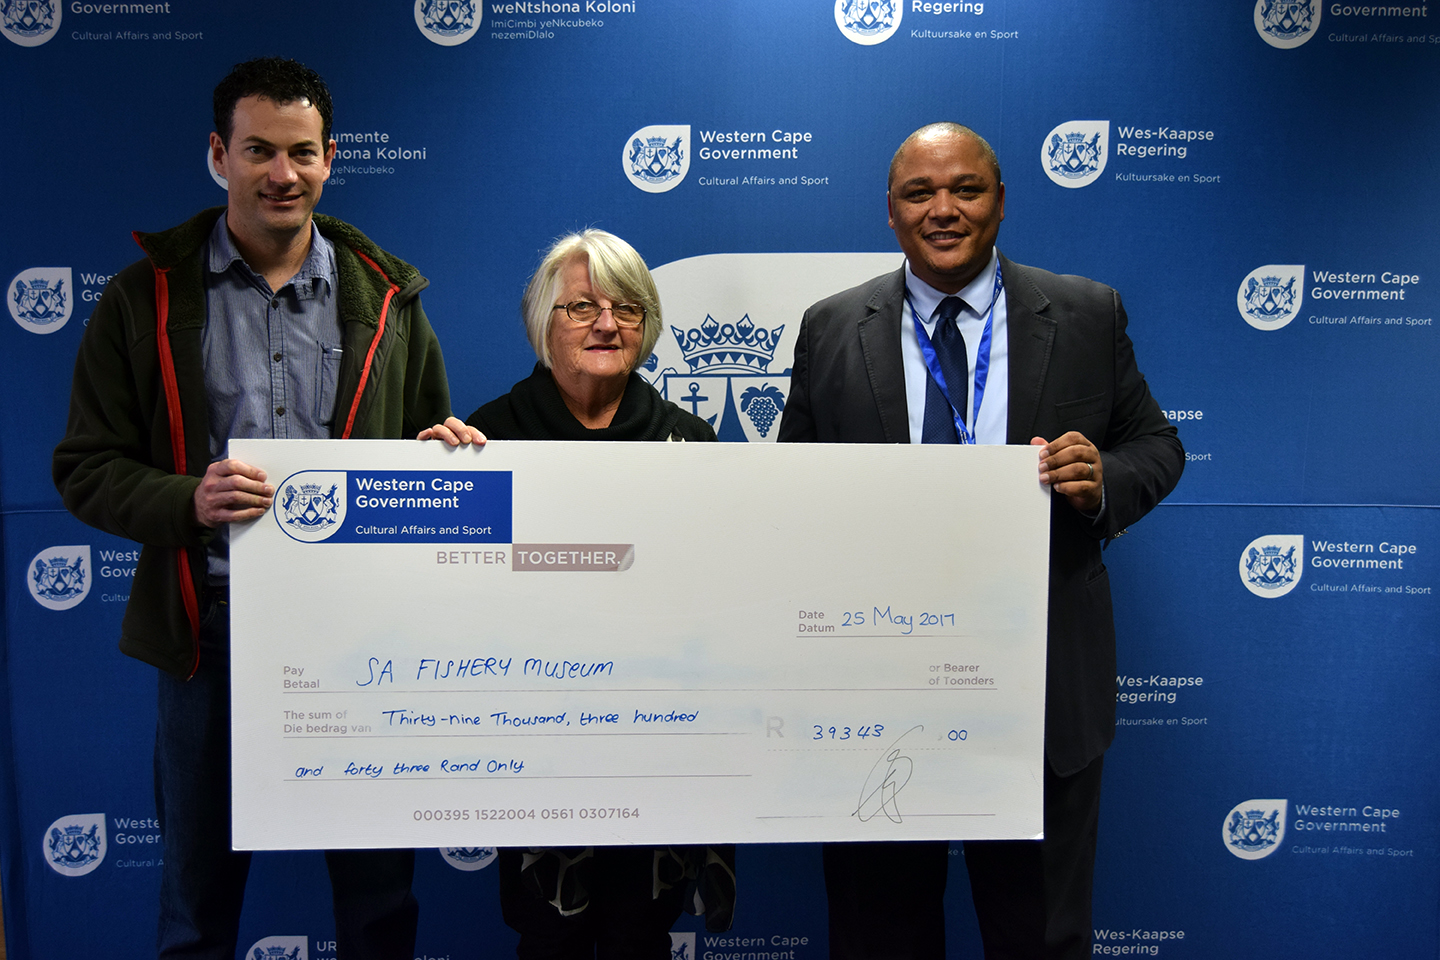 The SA Fisheries Museum in Velddrif received R39 343 from DCAS